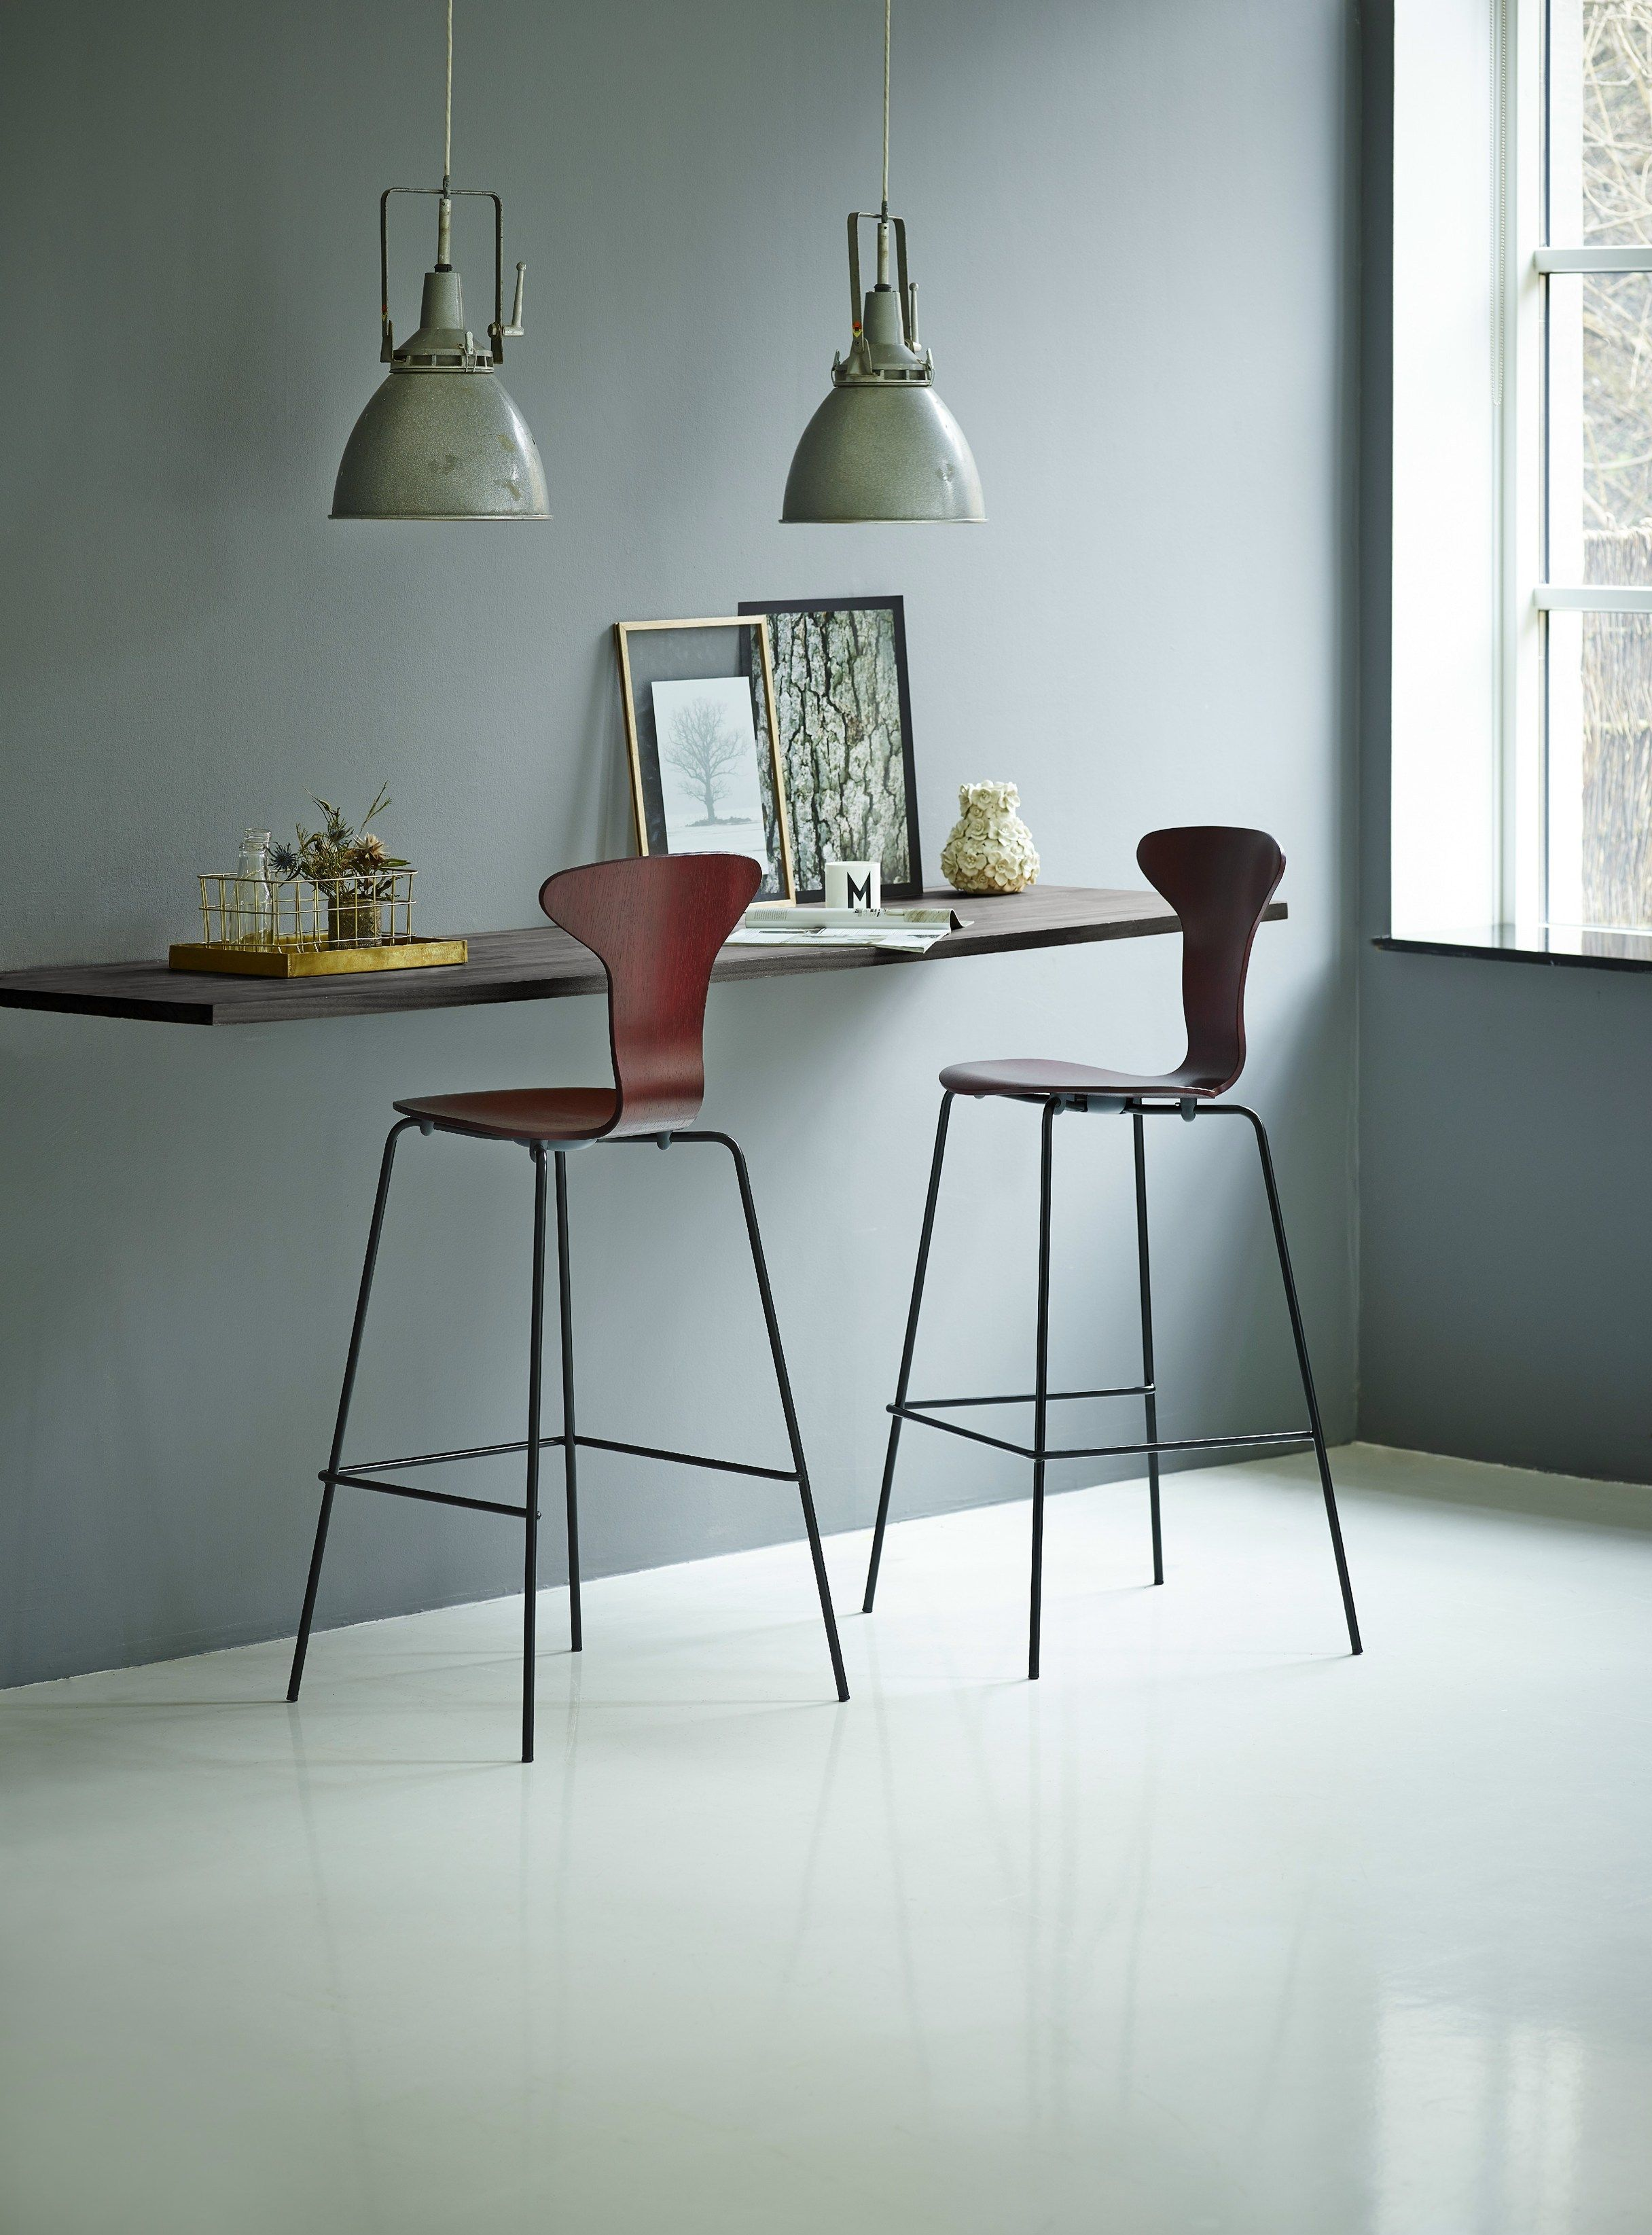 Wooden Counter Stool With Footrest Munkegaard Chair Collection By Howe